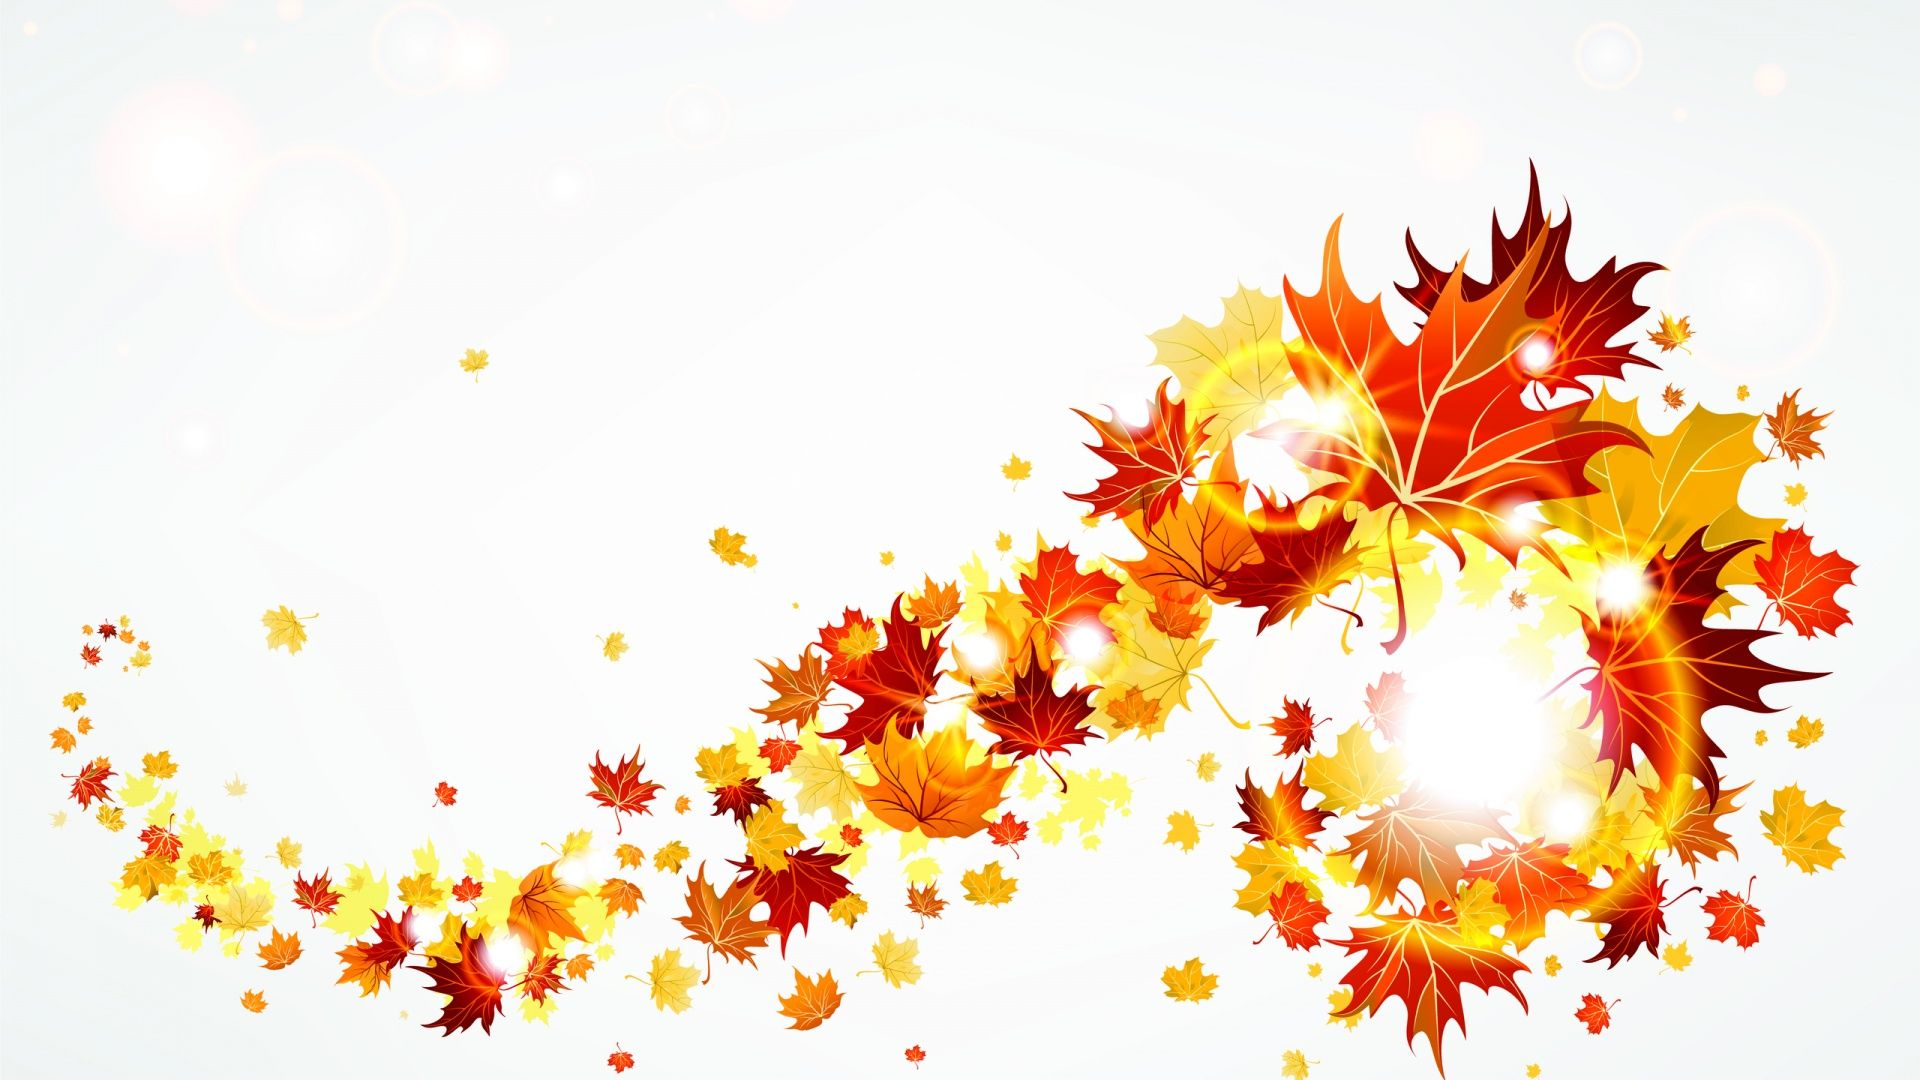 Clipart free fall leaves picture Free Fall Leaves Clip Art, Download Free Clip Art, Free Clip Art on ... picture